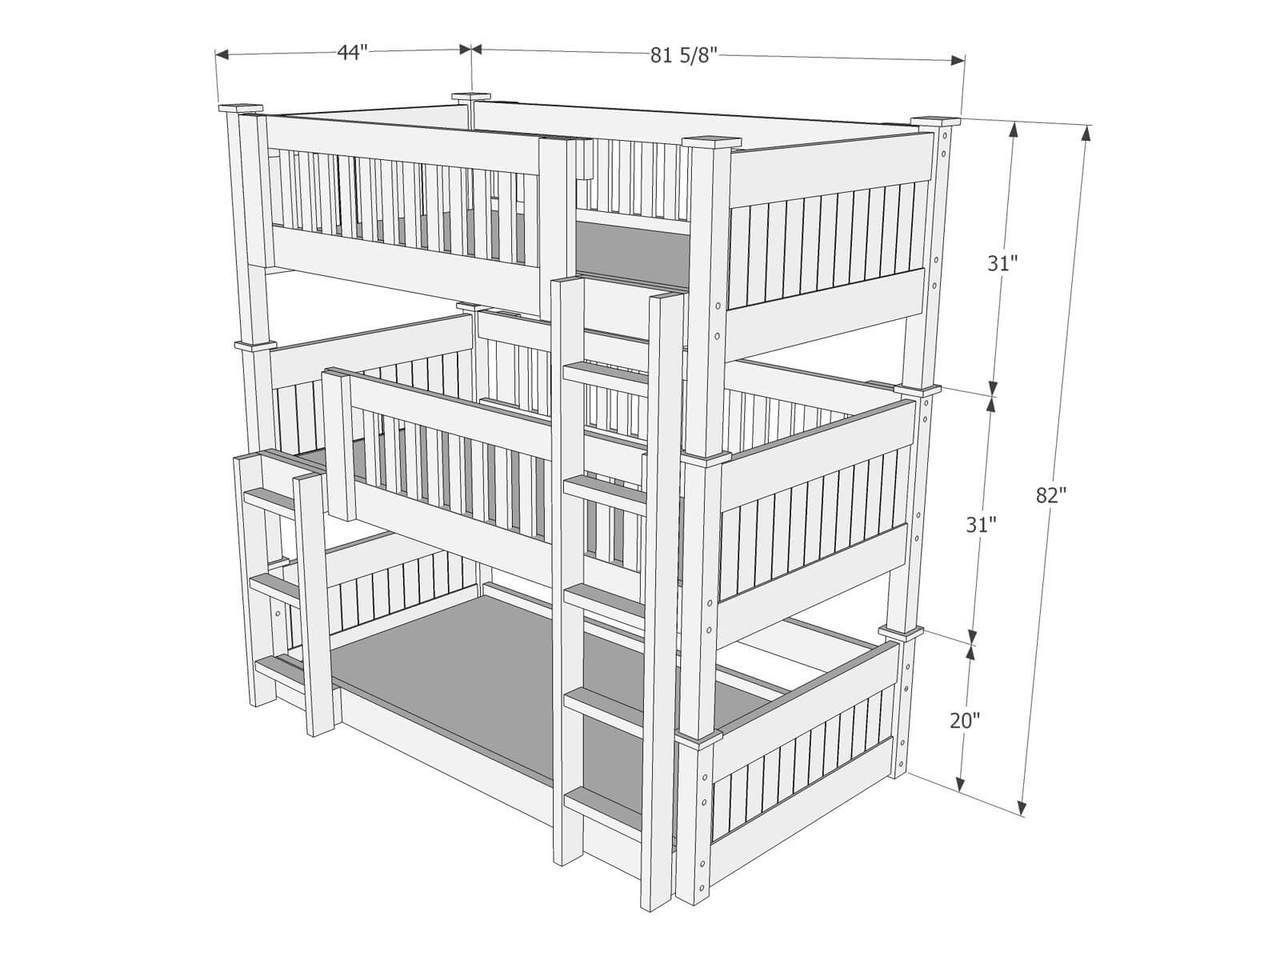 Loft bed plans with stairs  Dimensions of Triple Bunk Bed B  rino  Pinterest  Triple bunk